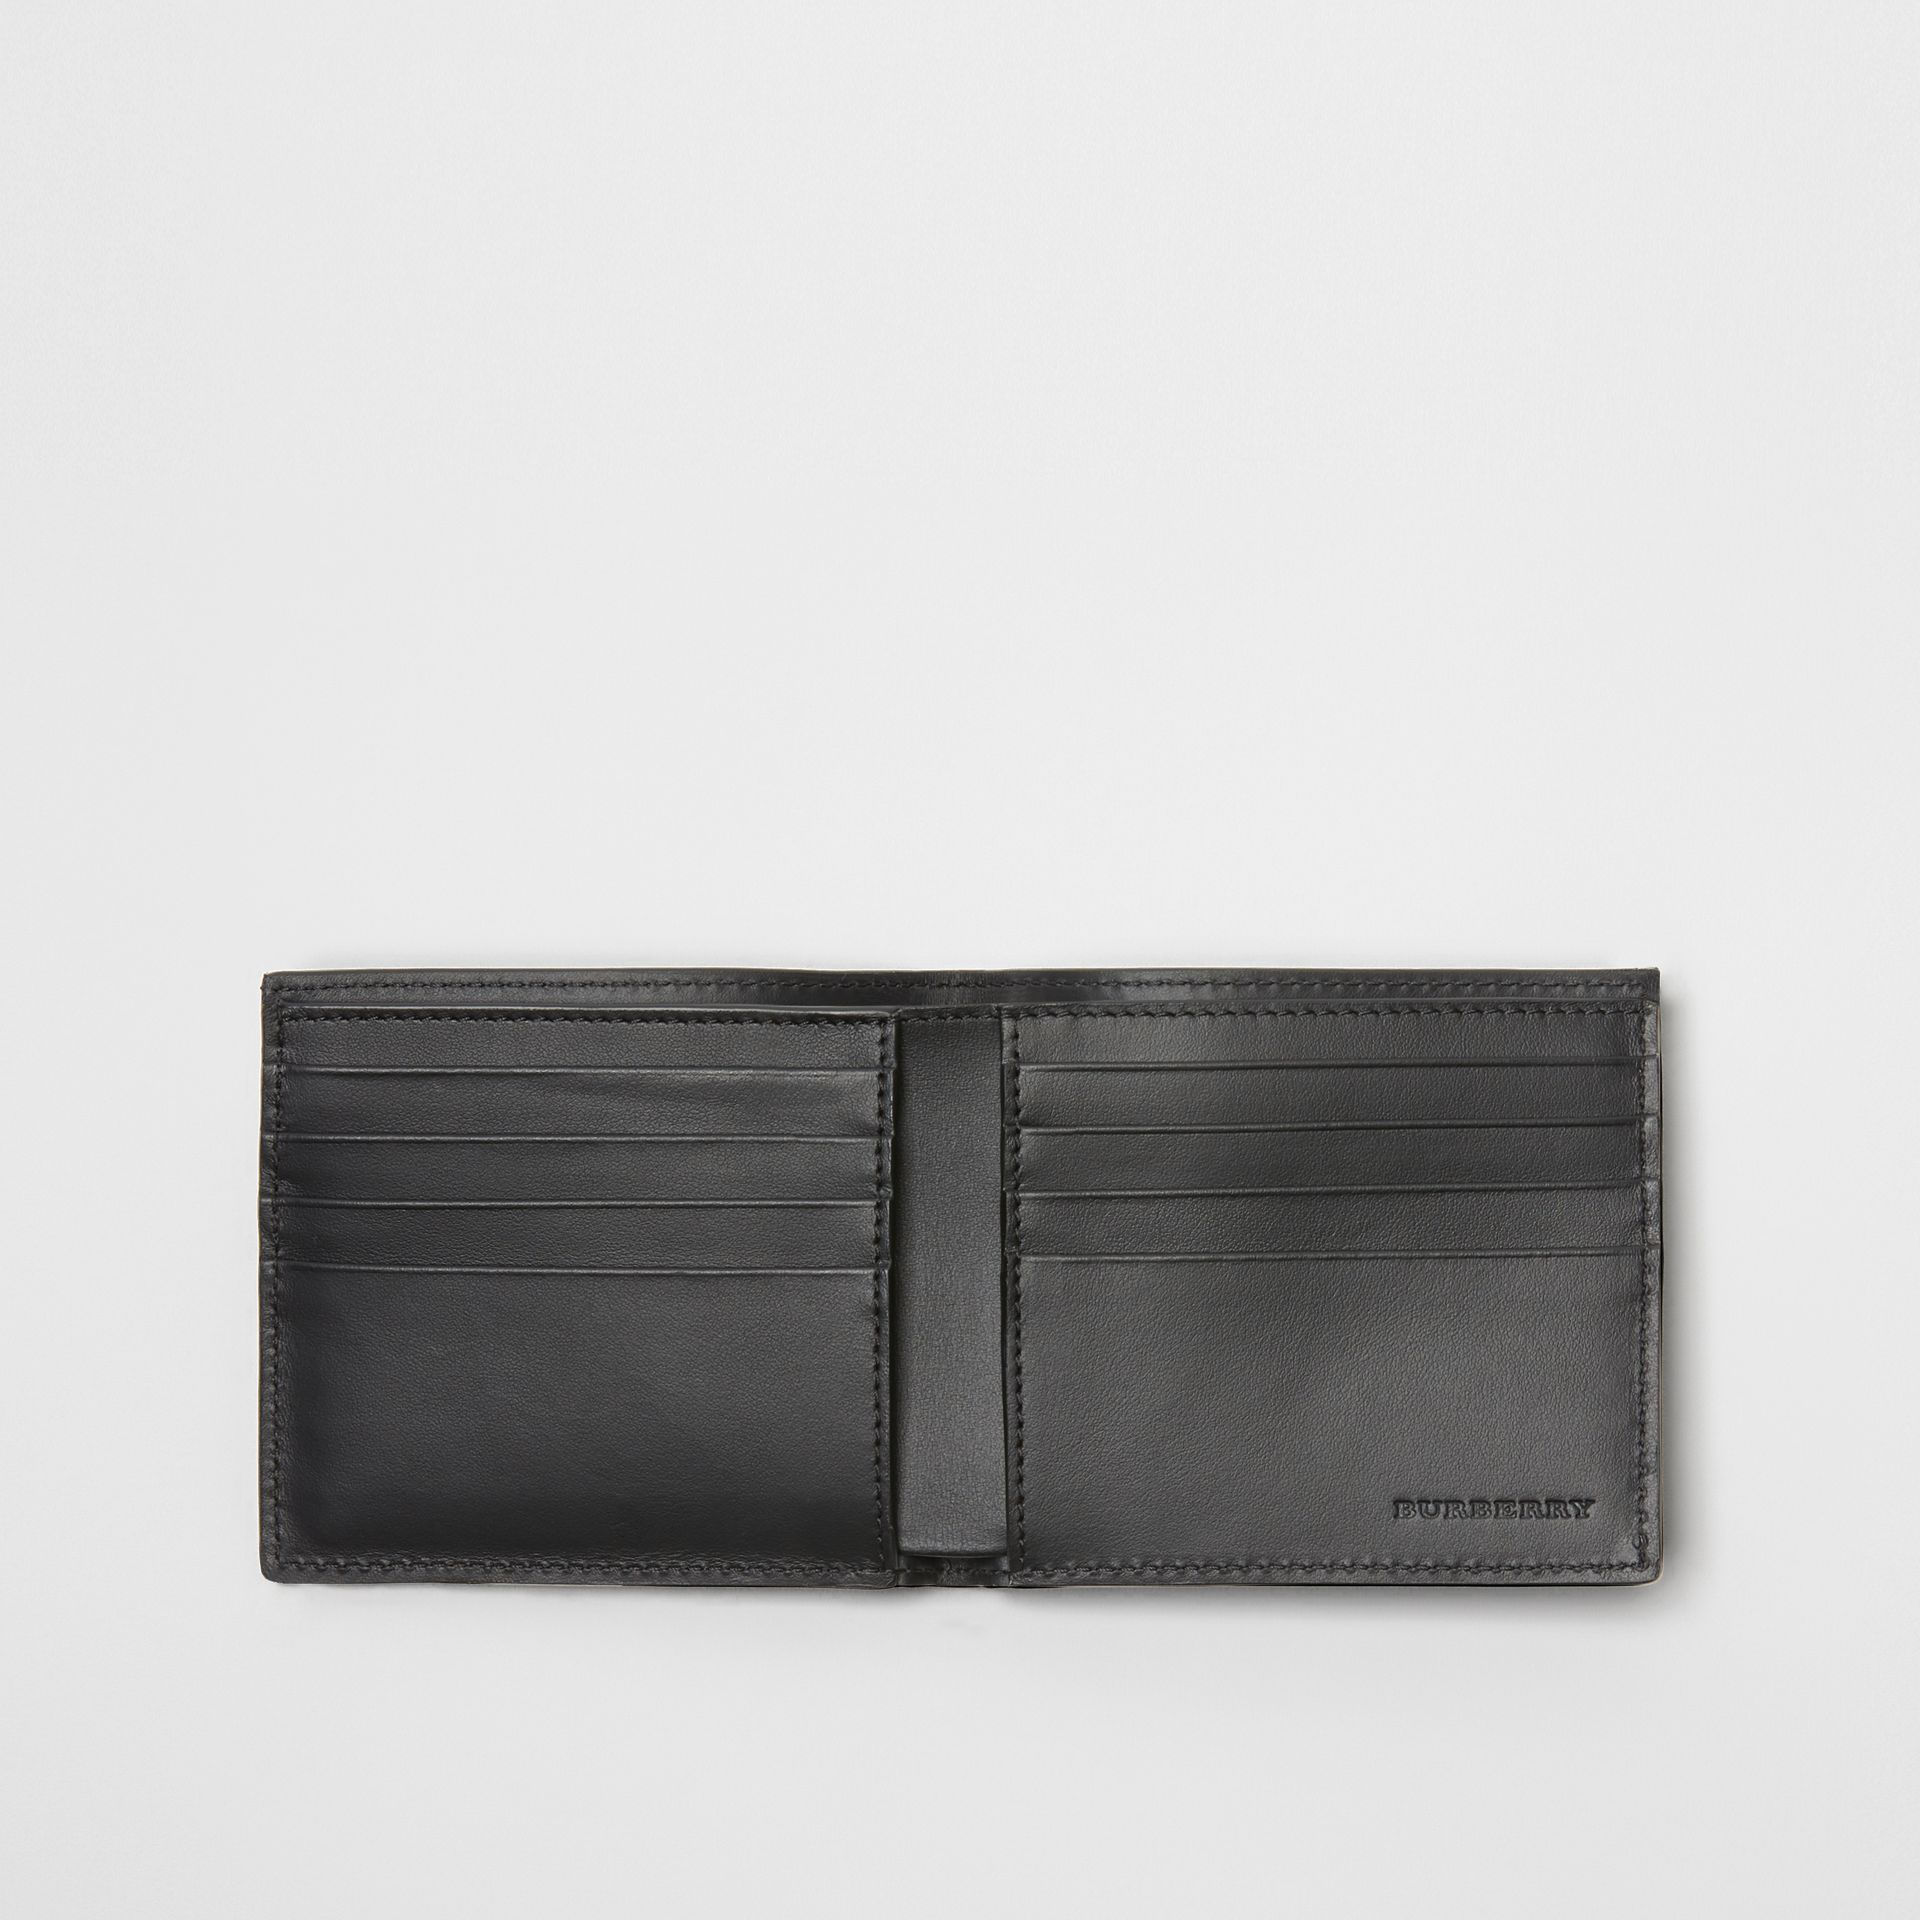 Perforated Check Leather International Bifold Wallet in Black - Men | Burberry - gallery image 2